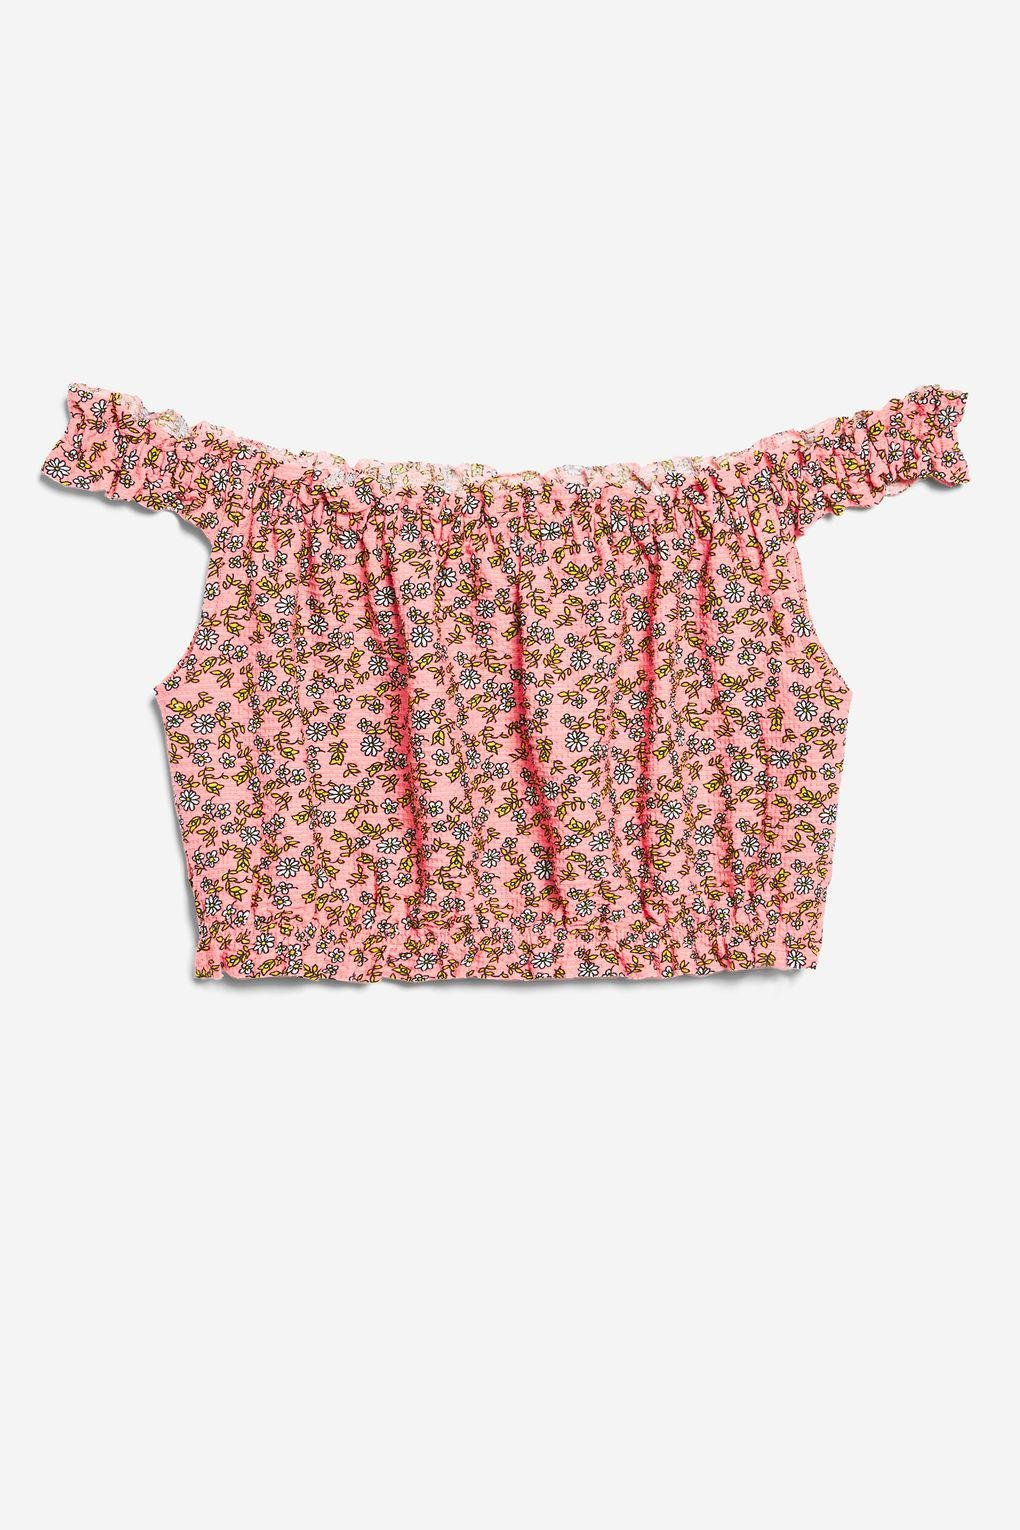 cce9bead3967d8 Lyst - TOPSHOP Strappy Floral Print Bardot Top in Pink